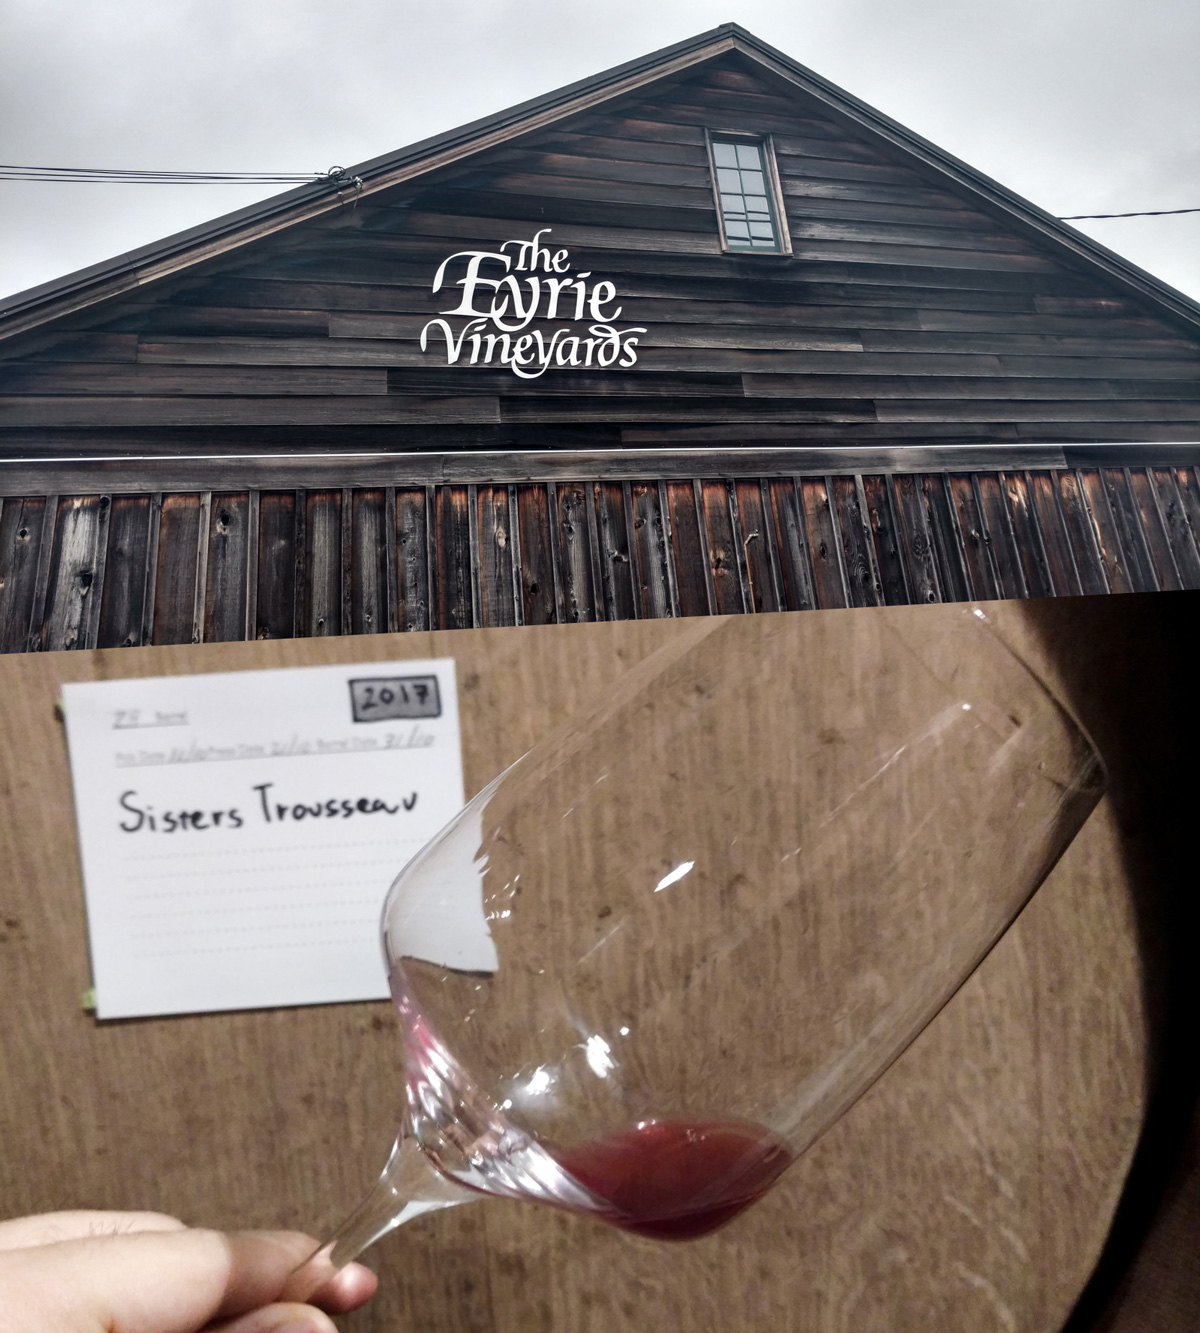 the-eyrie-vineyards-oregon-trousseau